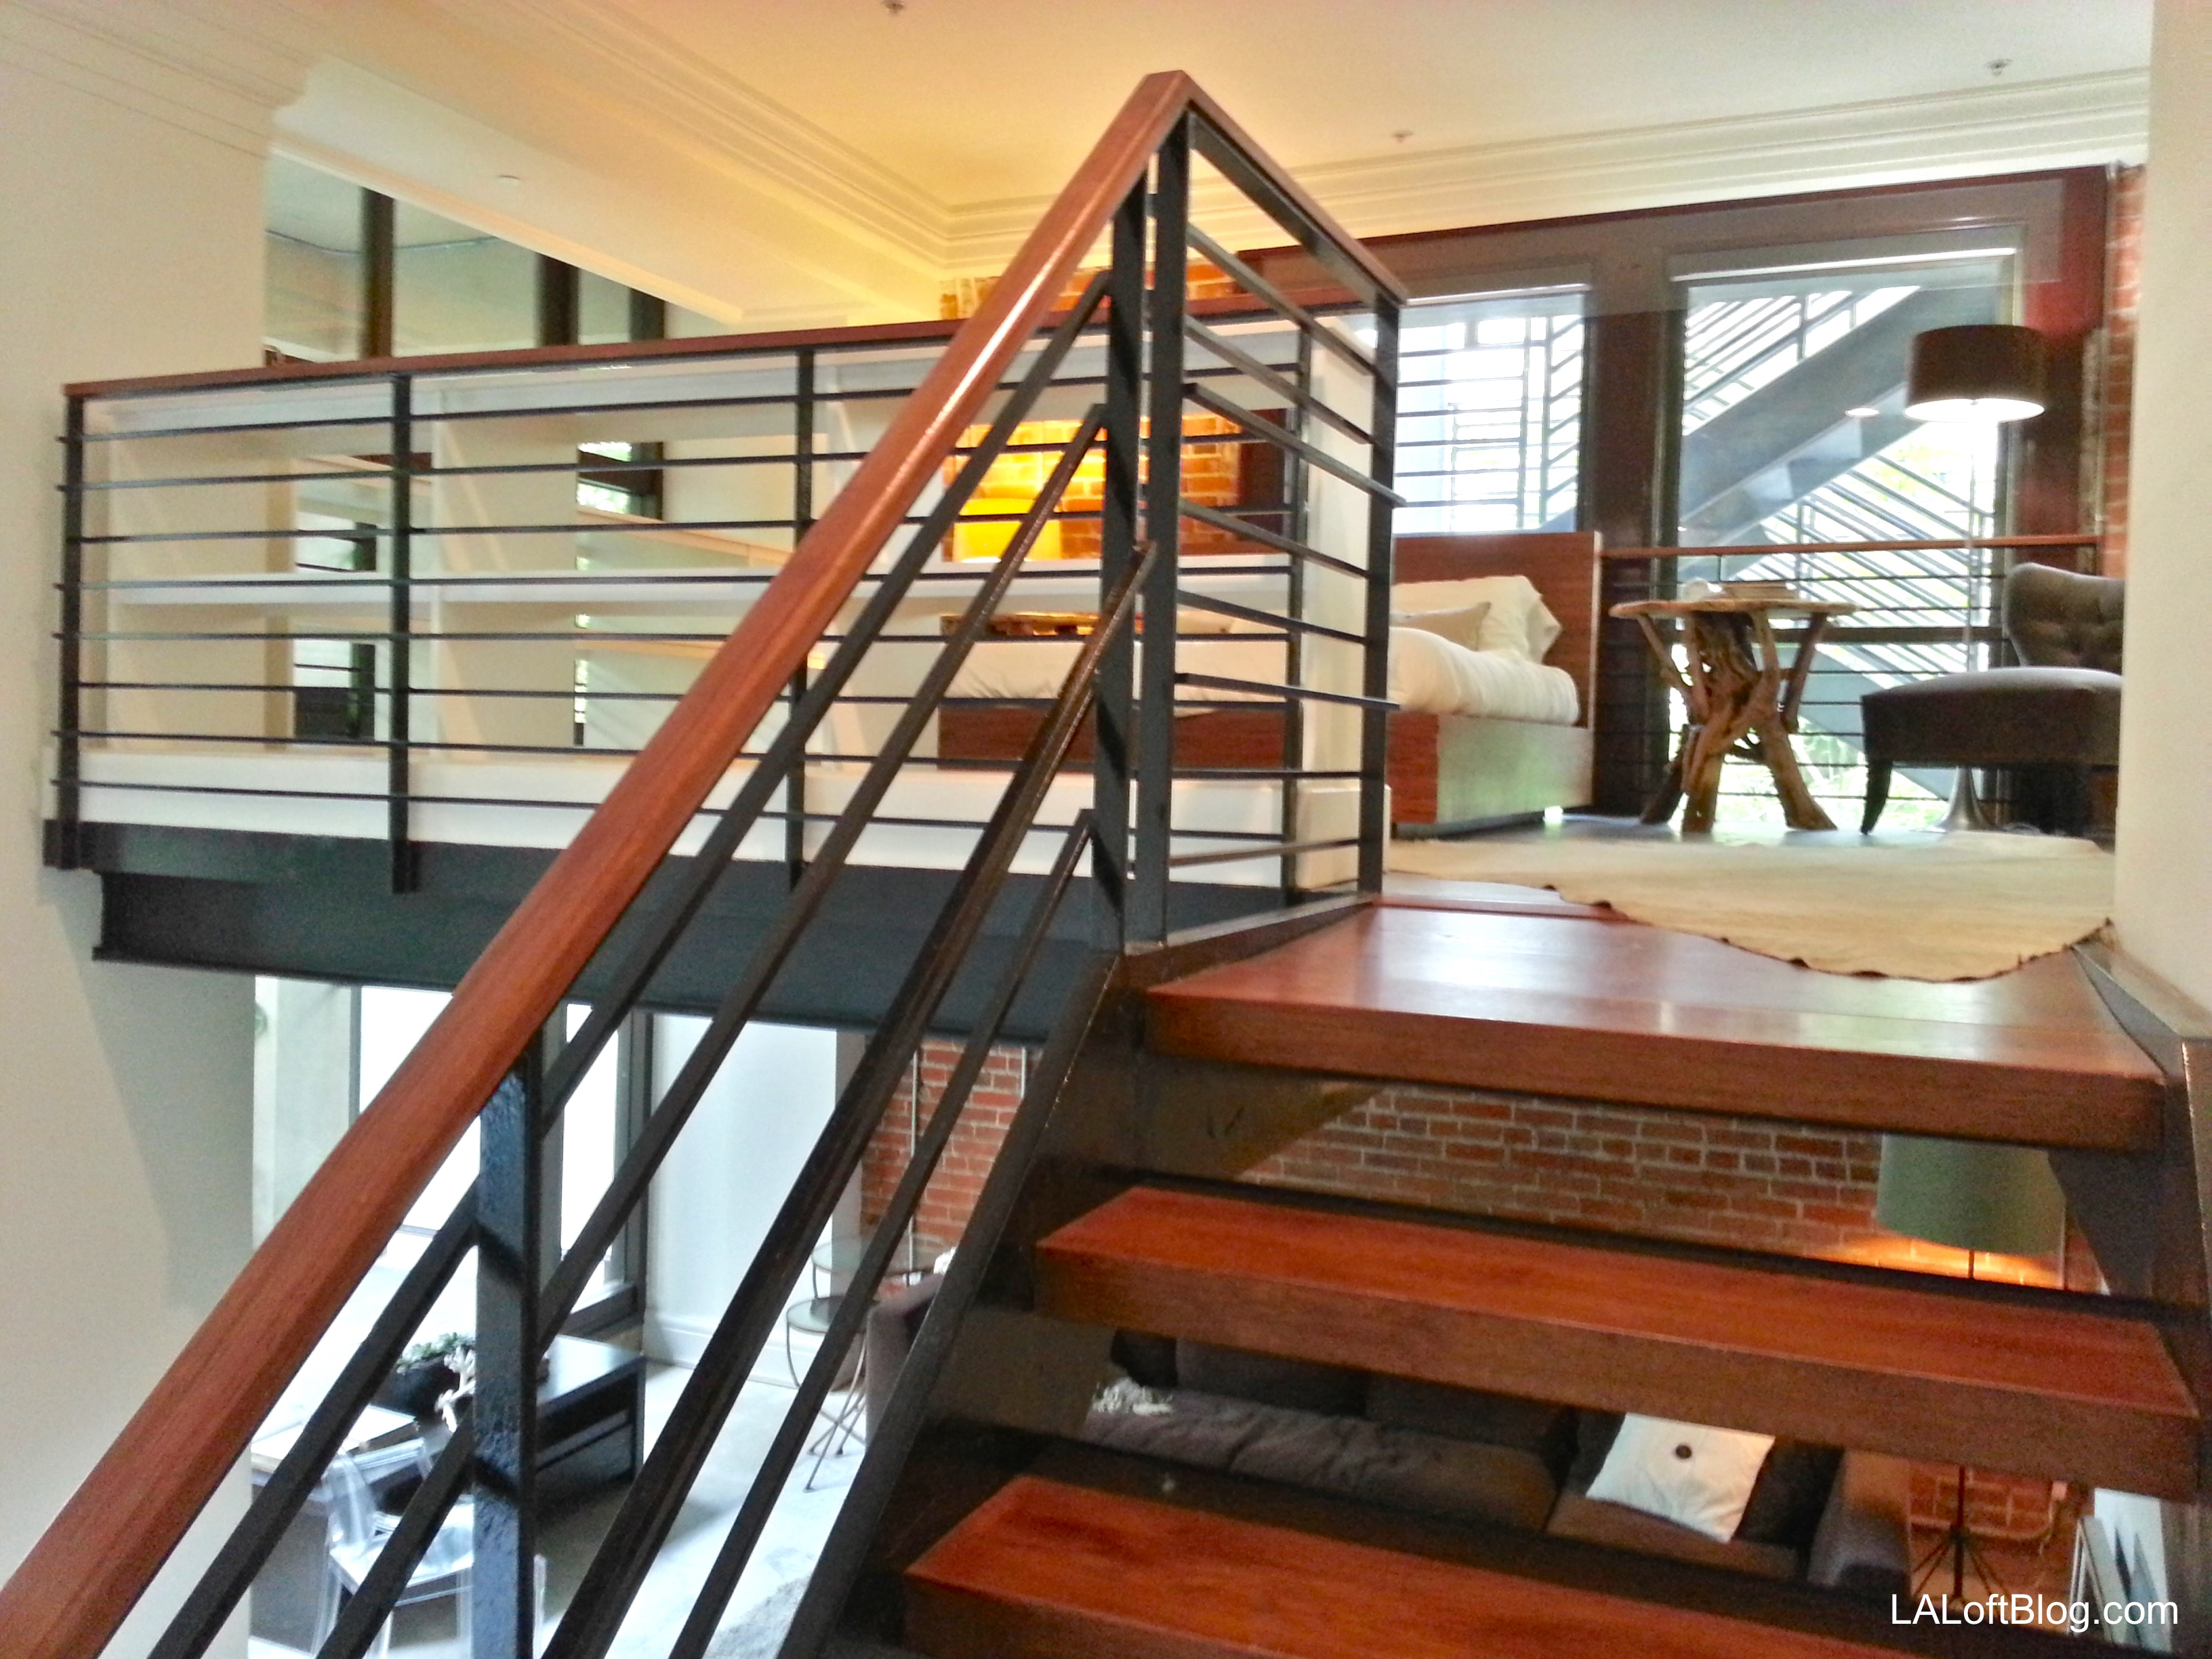 2 Story Condos 2 Level Lofts With Mezzanines In Downtown